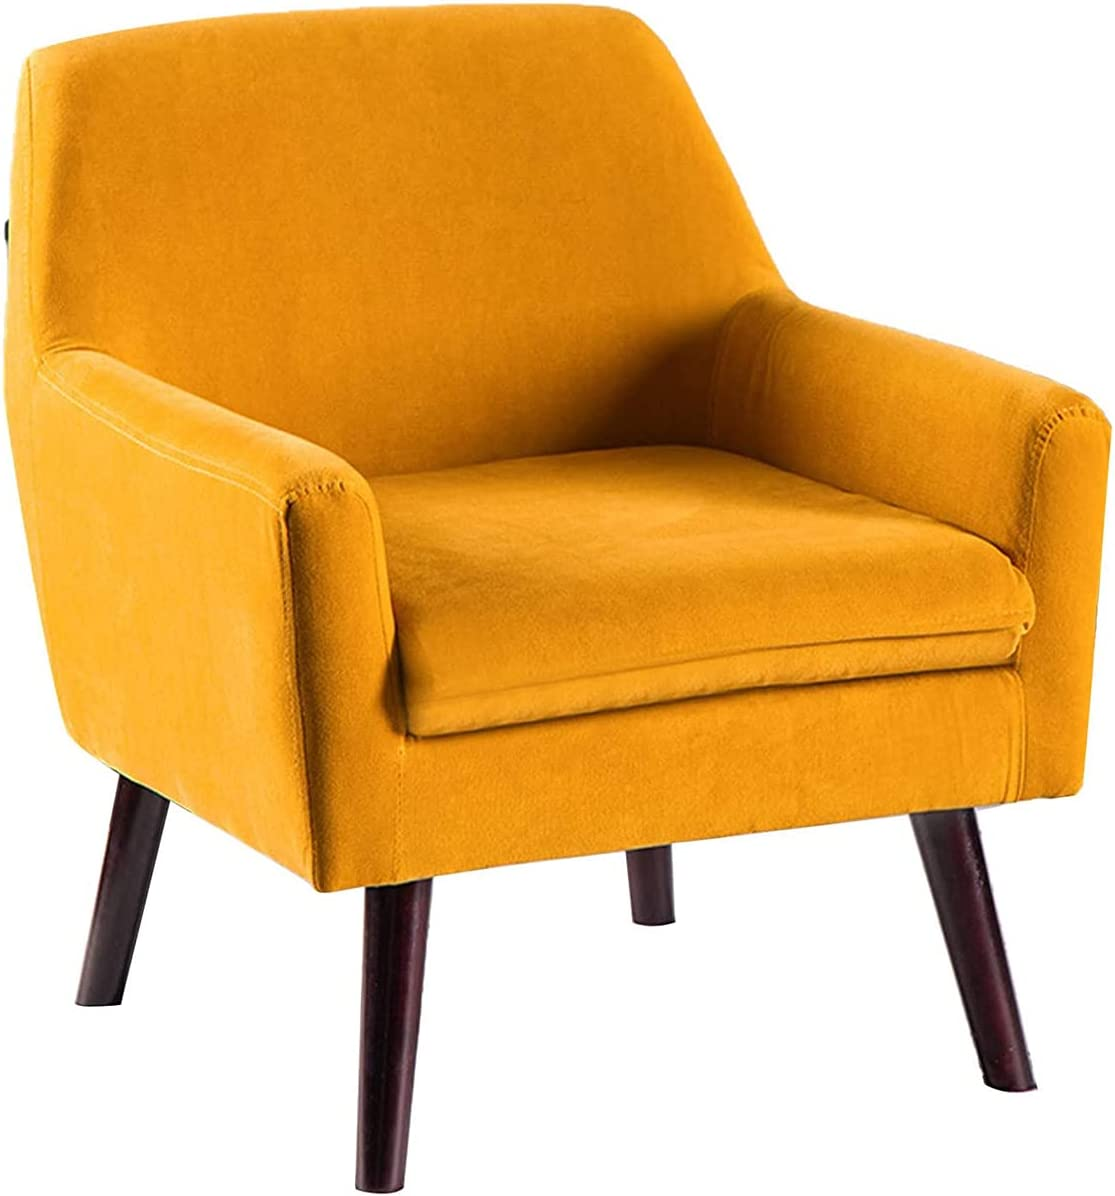 DWXN Armchair Max 68% OFF National uniform free shipping for Living Room Single Chair Modern Accent Fabric